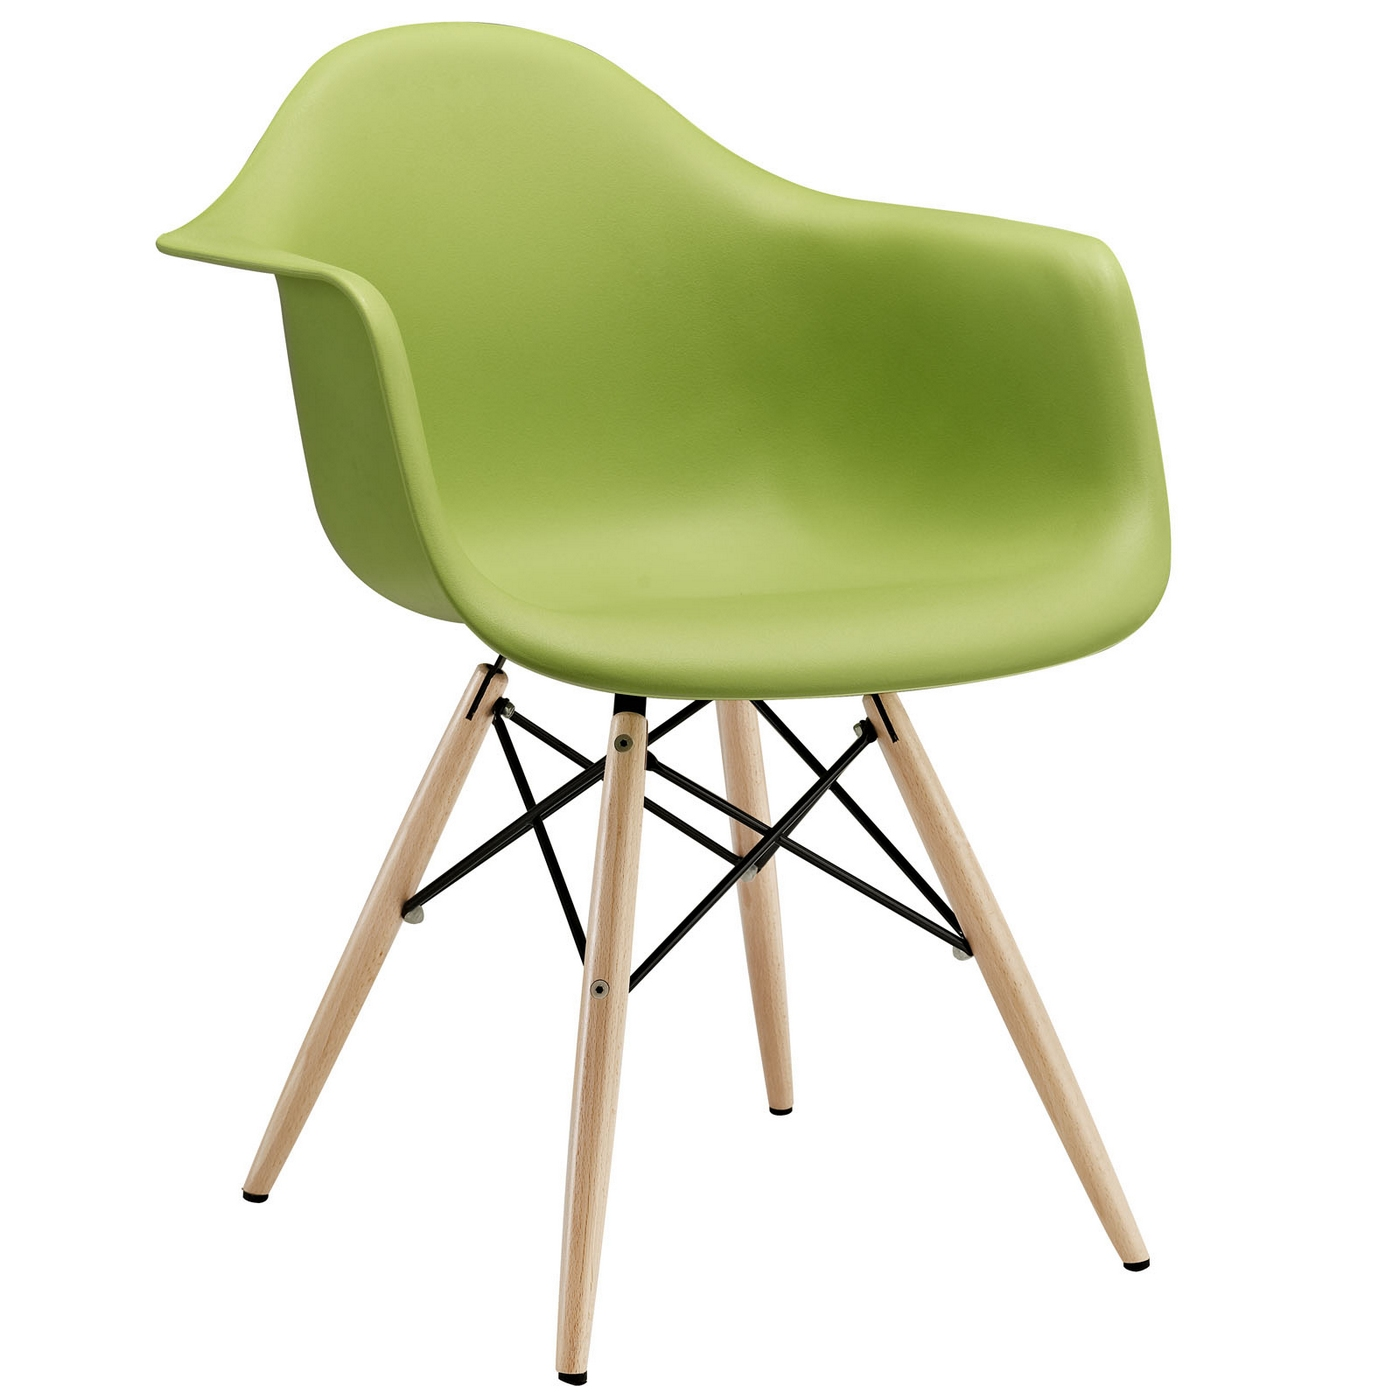 Modern Plastic Chairs Pyramid Modern Plastic Arm Chair W Wood Legs And Steel